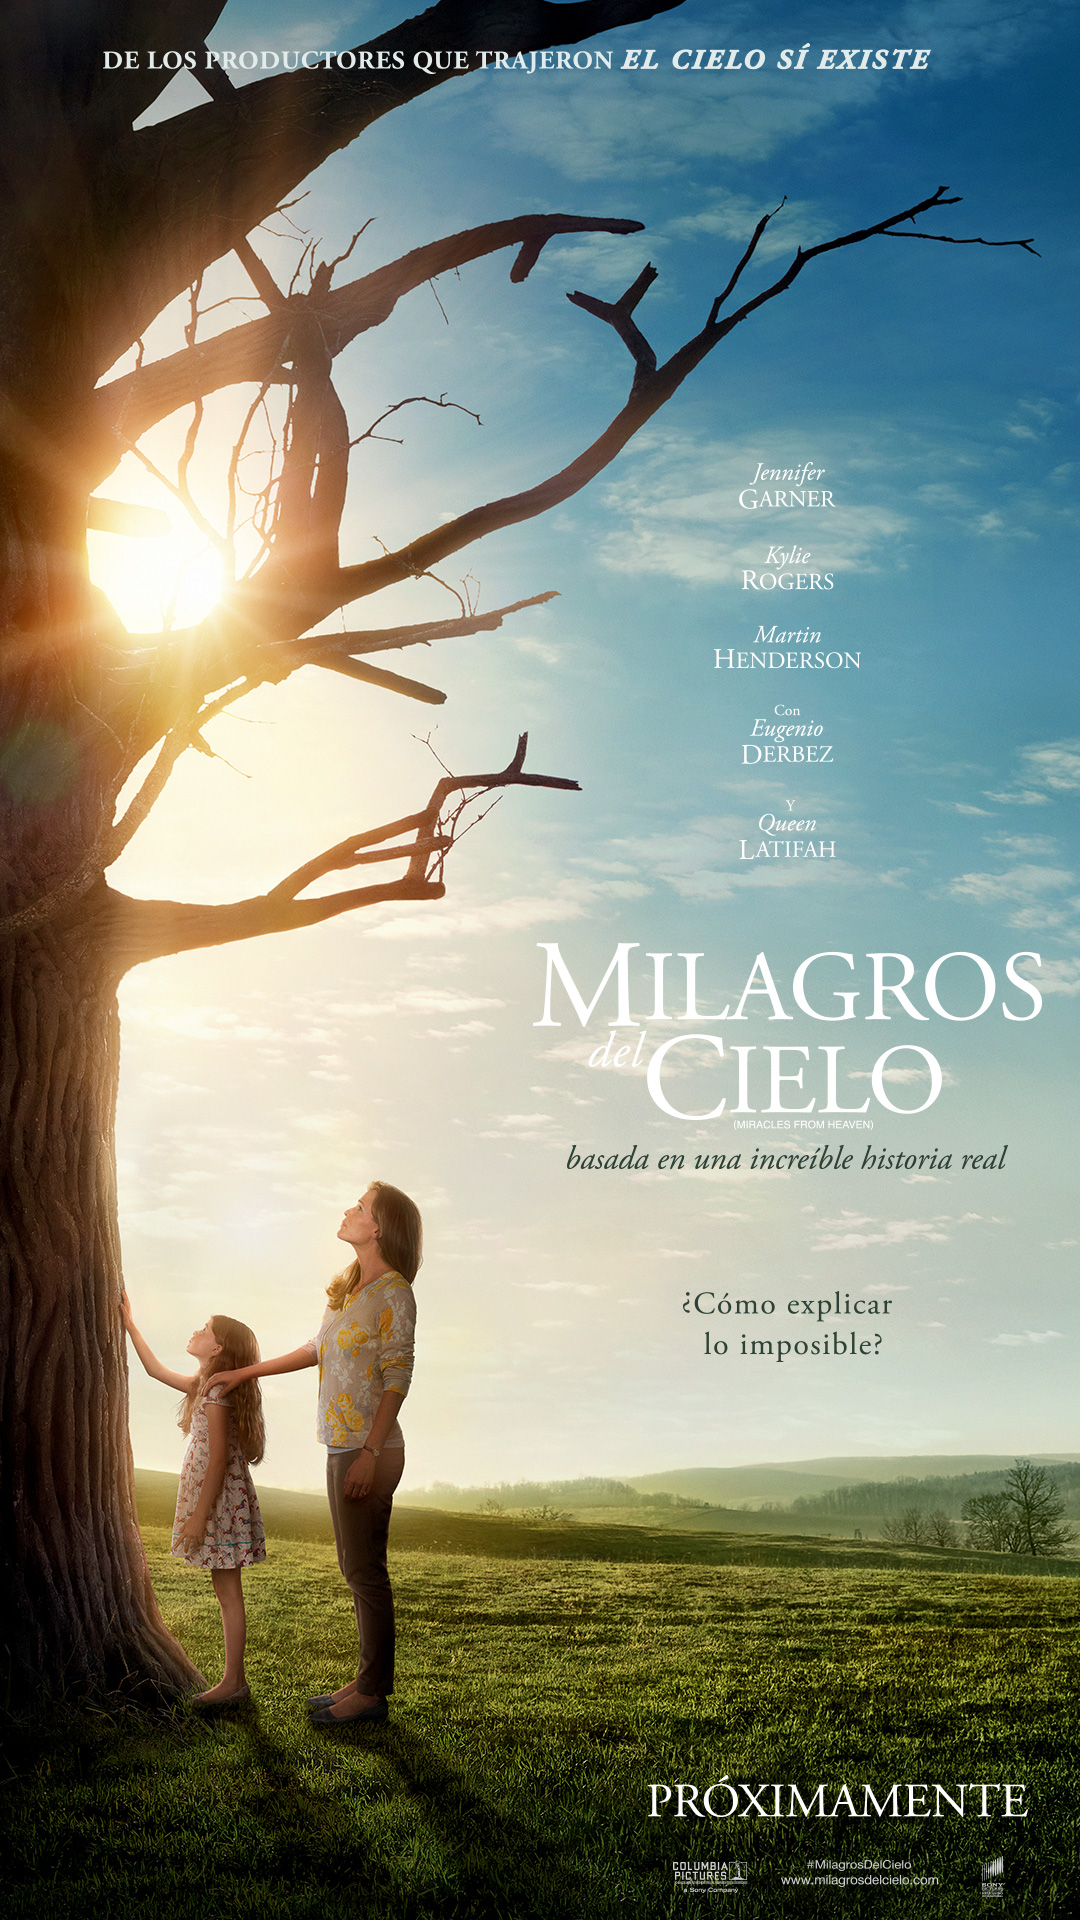 http://www.andesfilms.com.pe/milagros-2104/